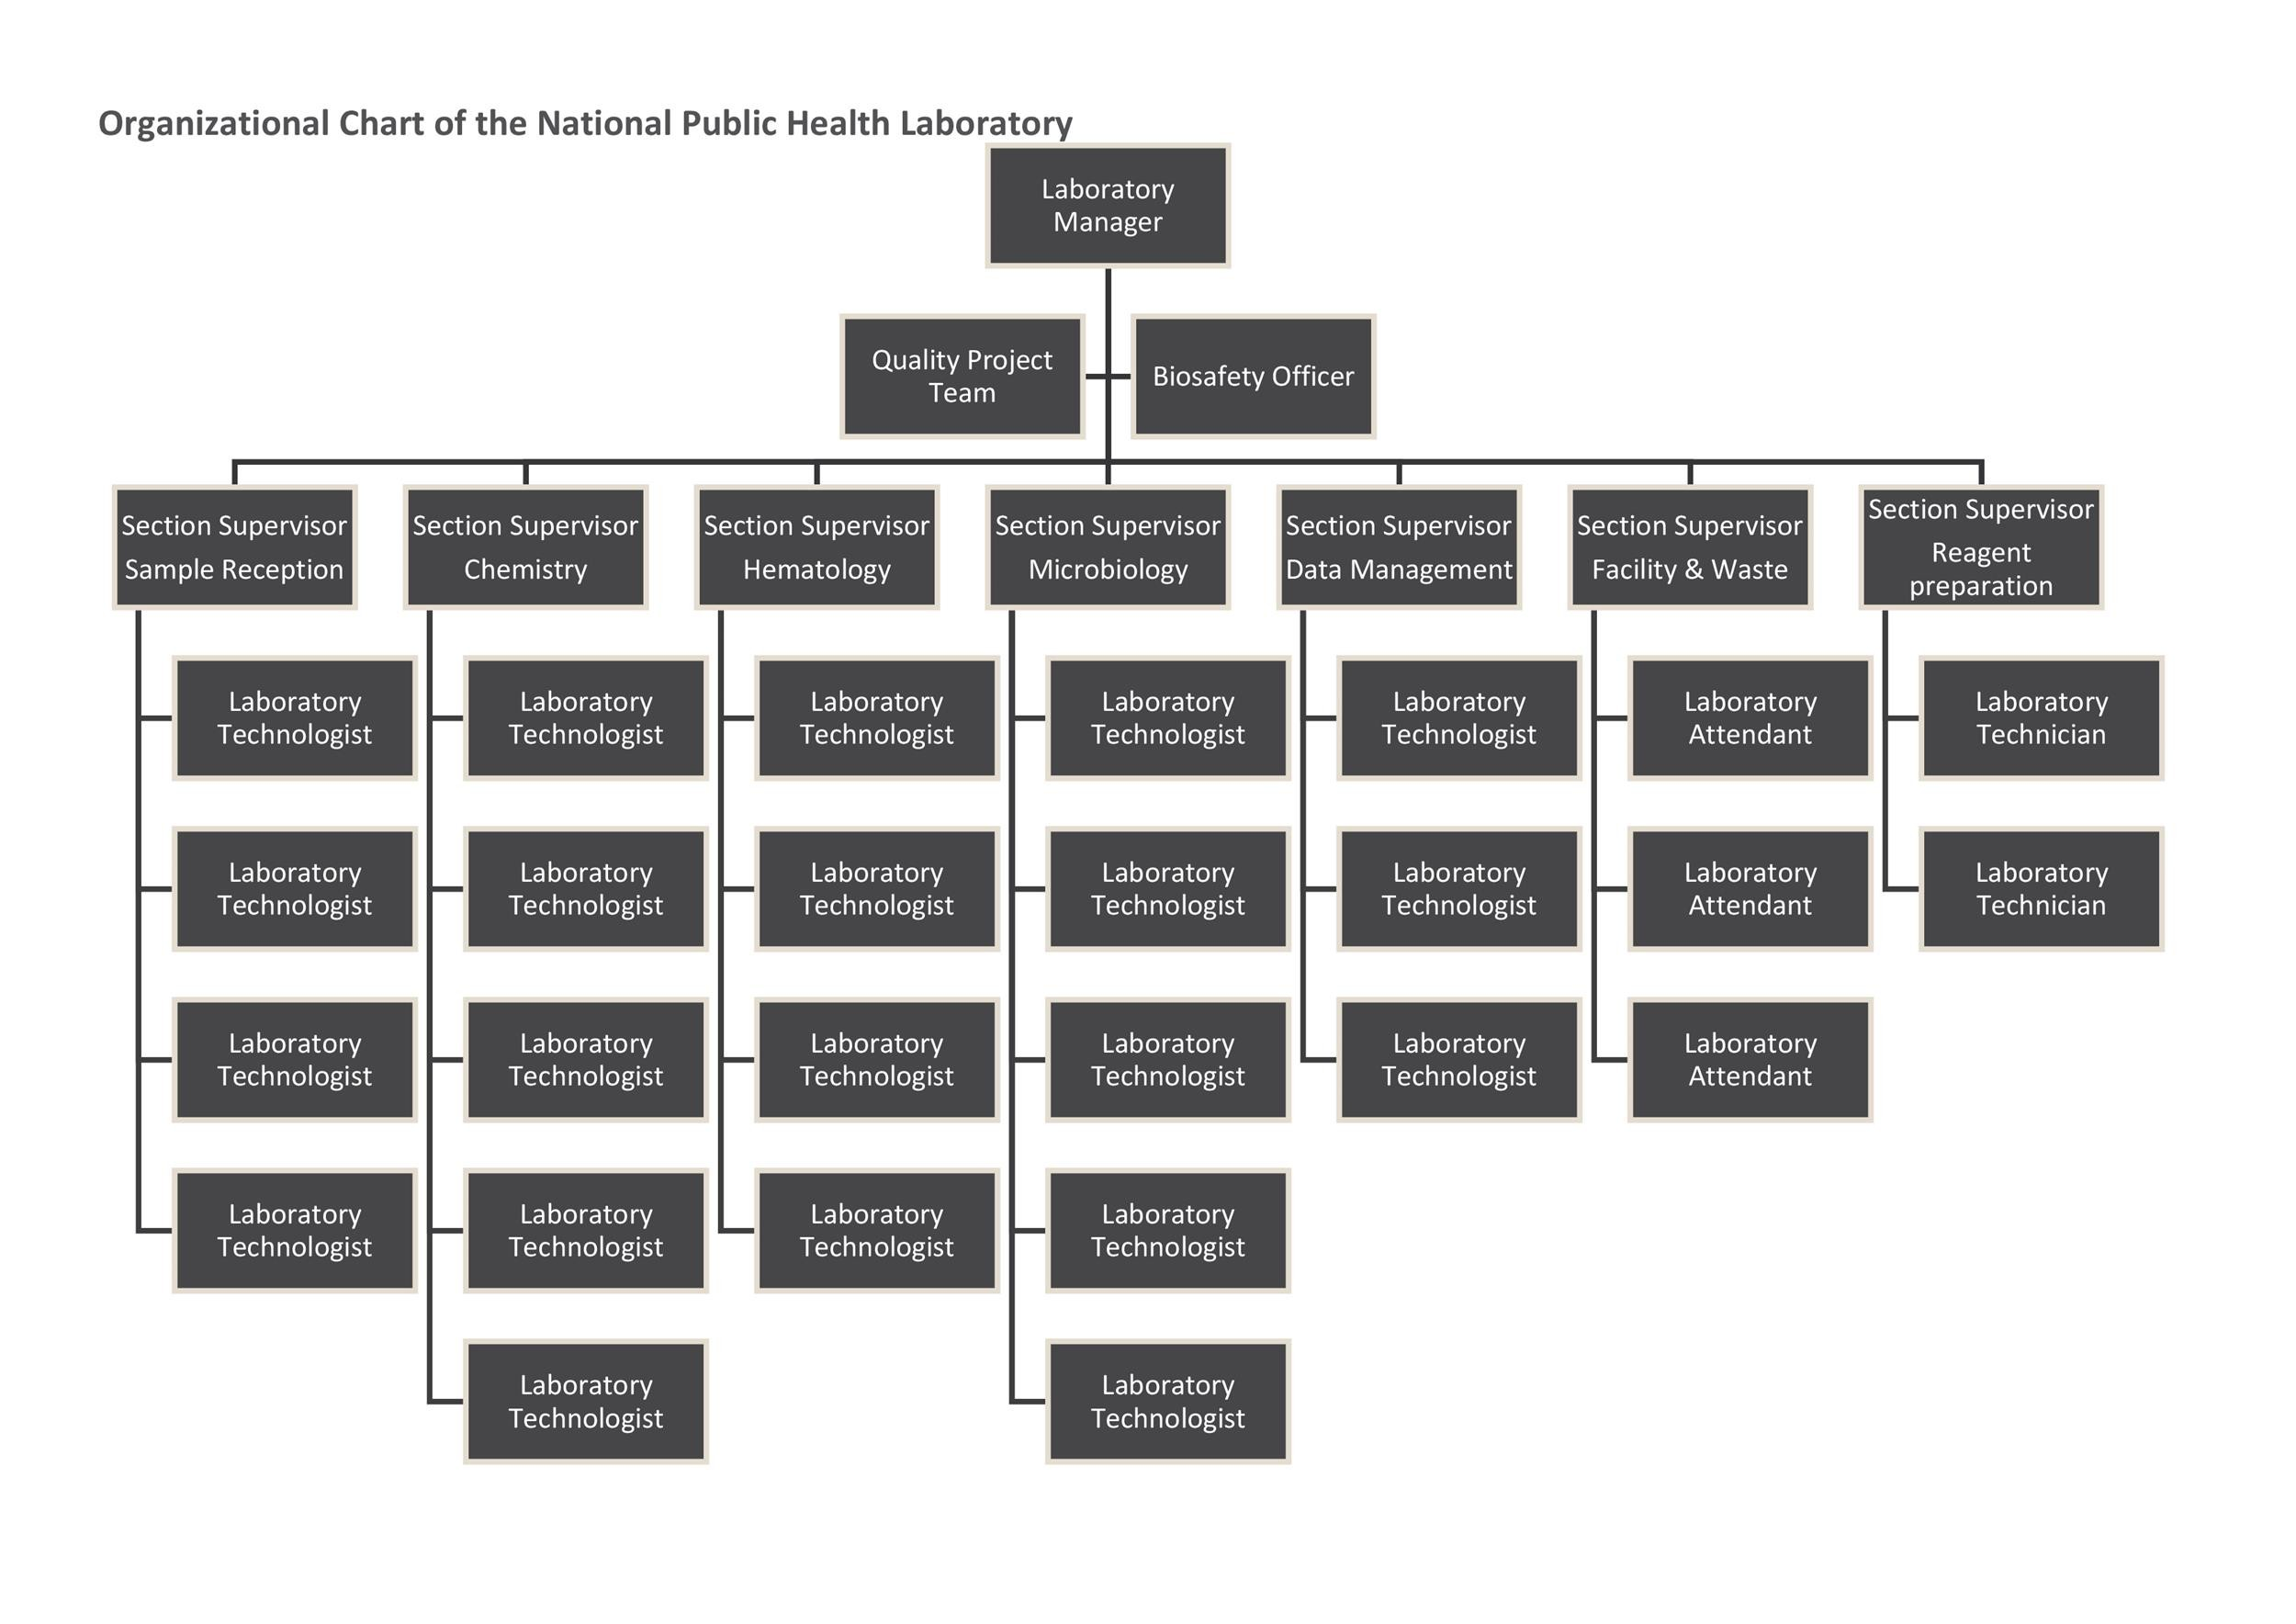 40 Organizational Chart Templates (Word, Excel, PowerPoint) - project organization chart